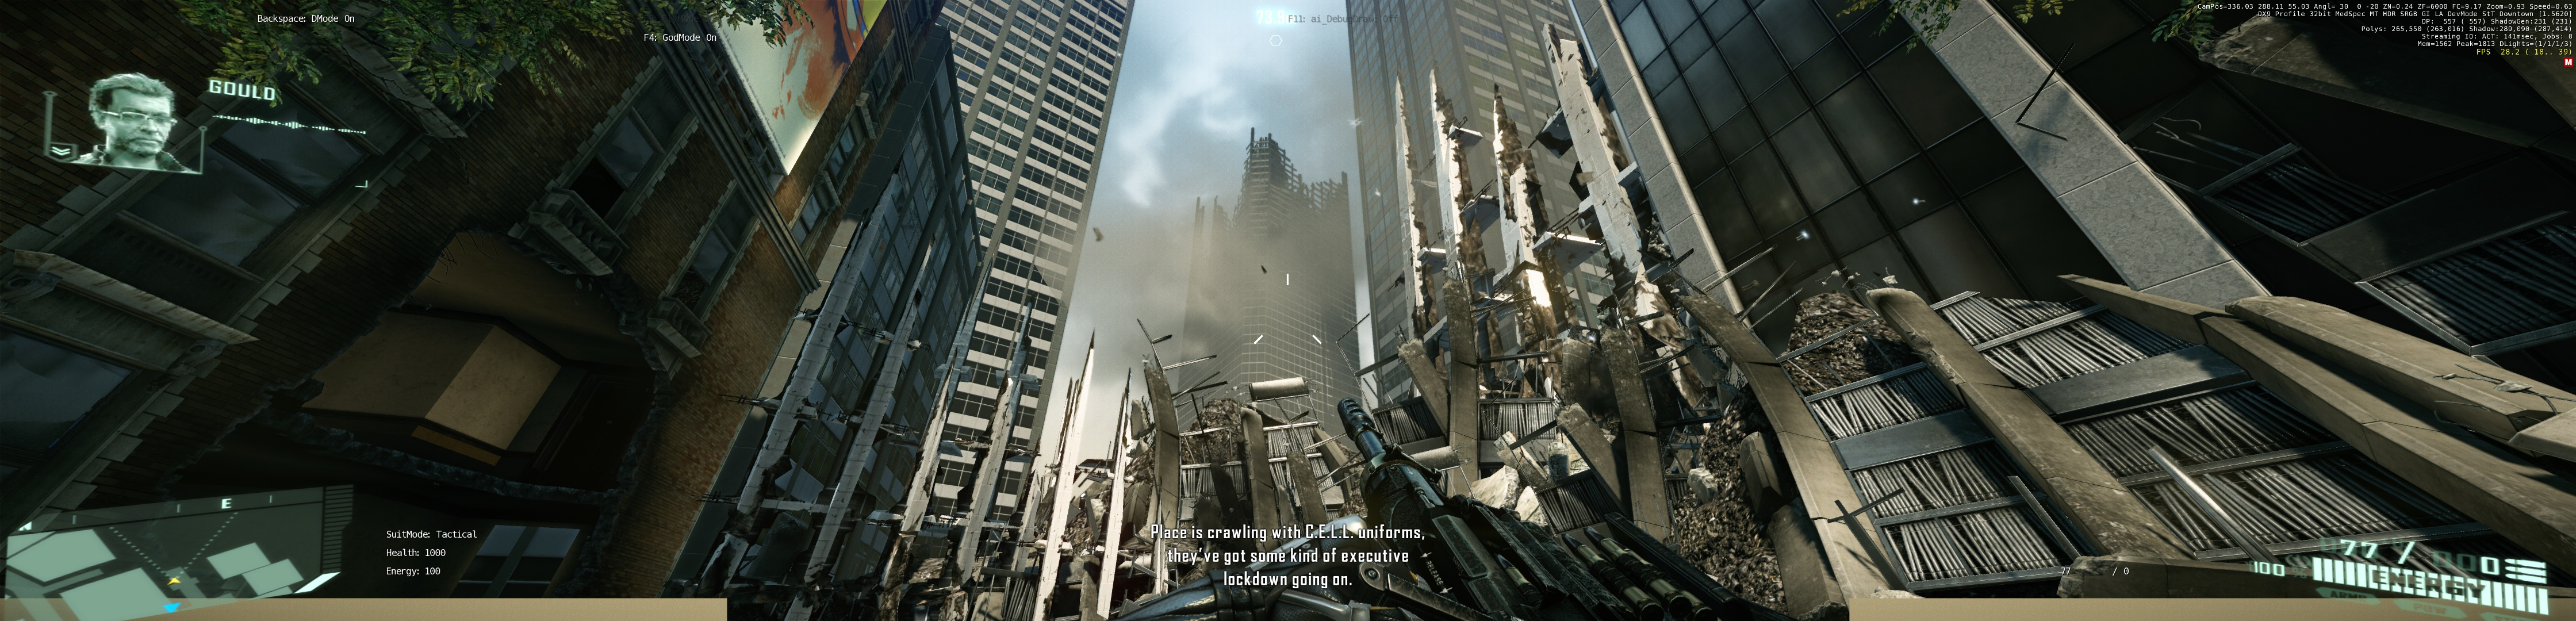 Soft TH Crysis 2 exe 2011 02 15 15 44 13 9